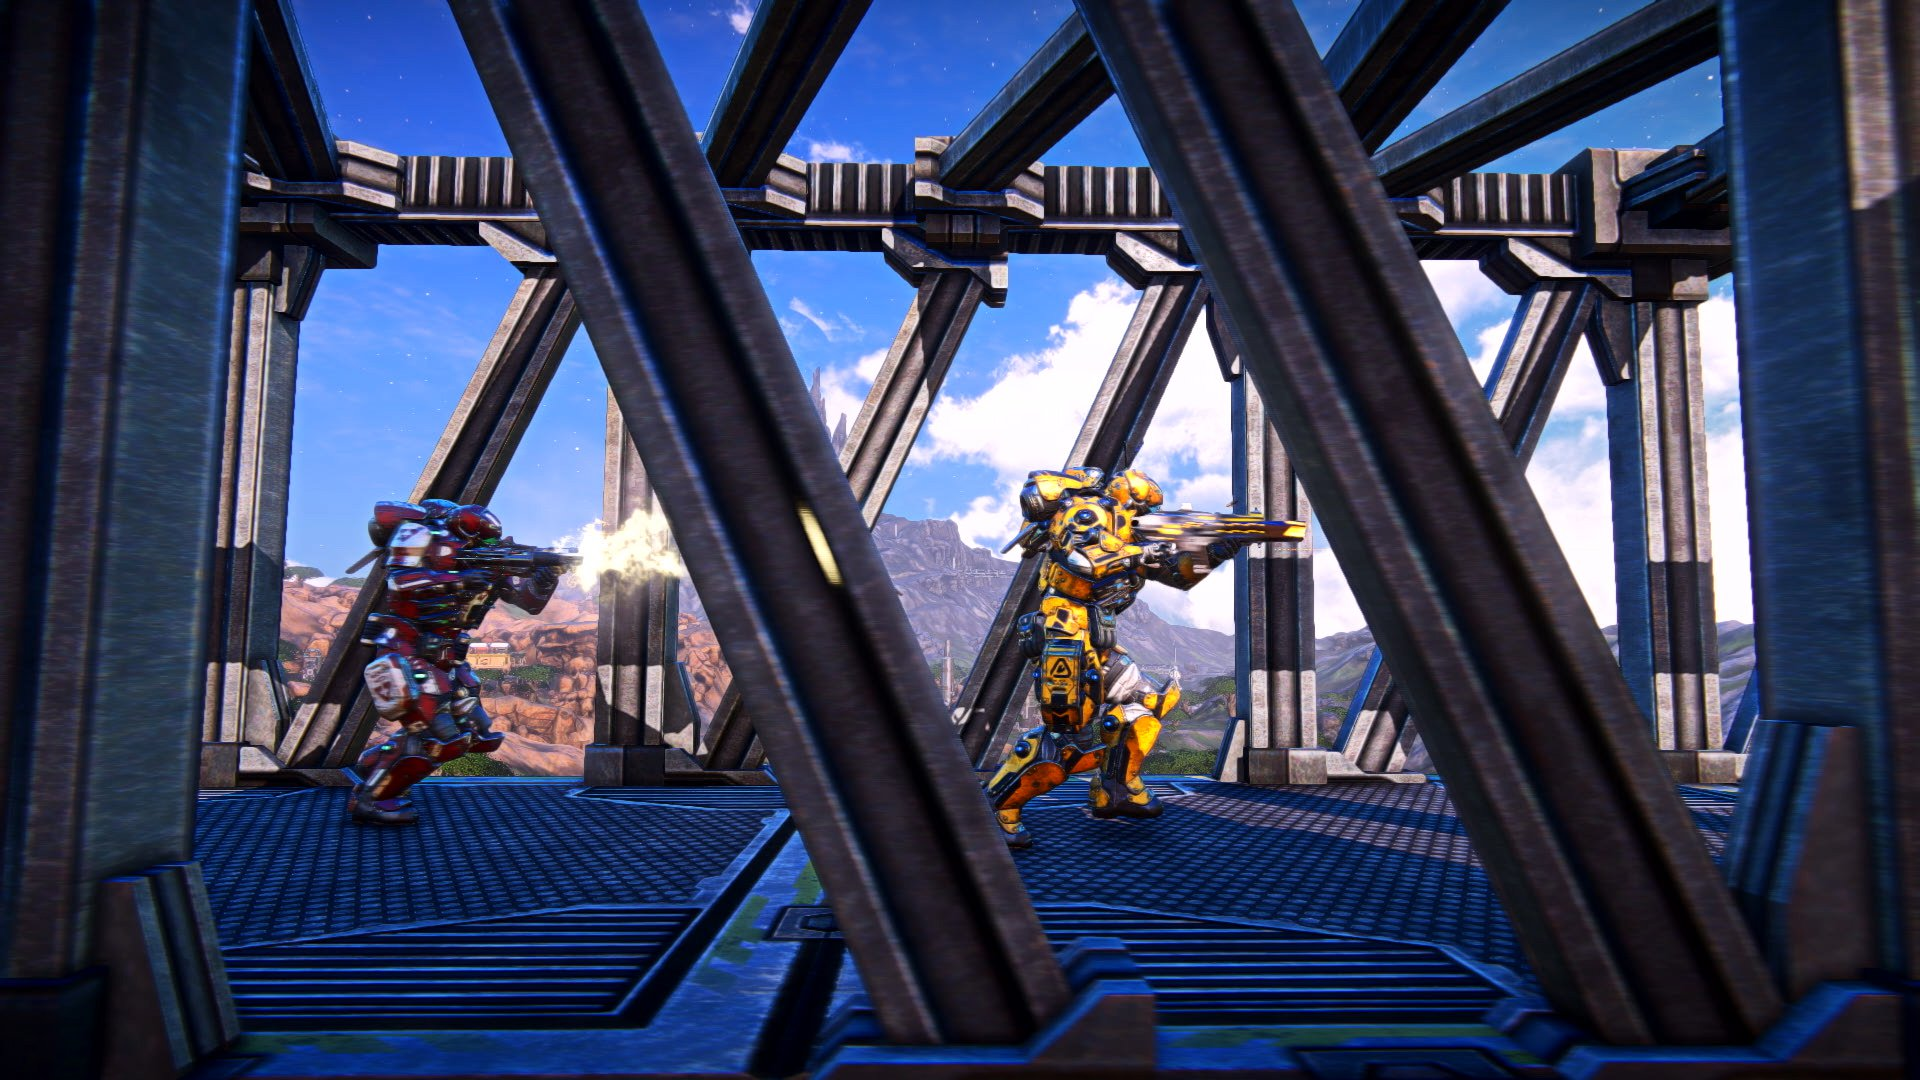 PlanetSide Arena will be the largest battle royale game around 2